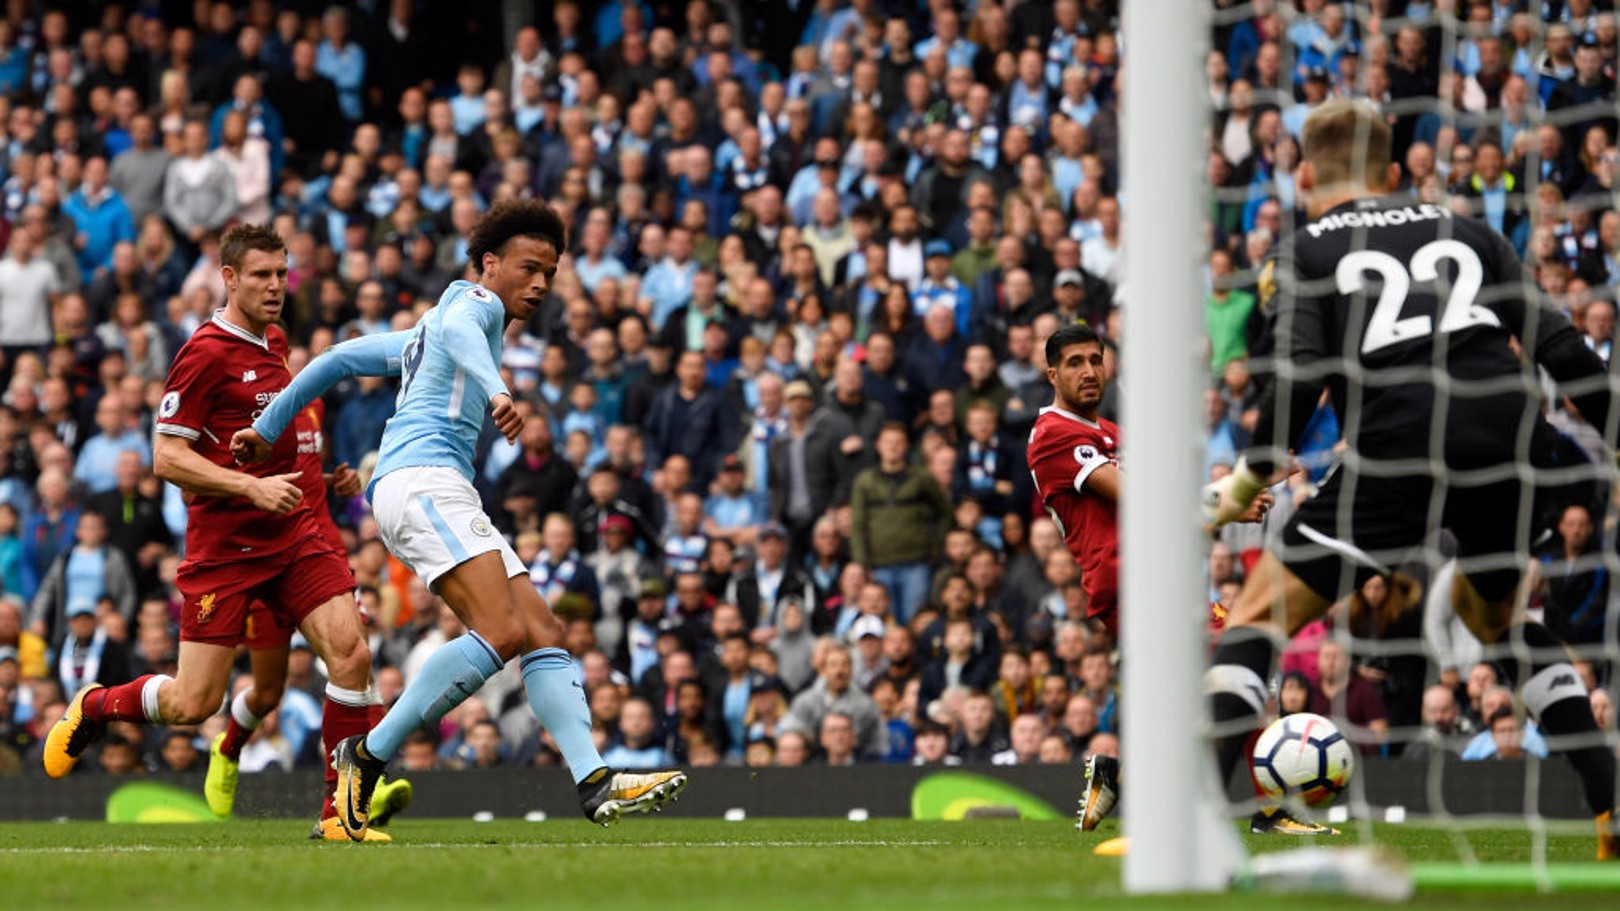 ON TARGET: Leroy Sane fires an effort goalwards.